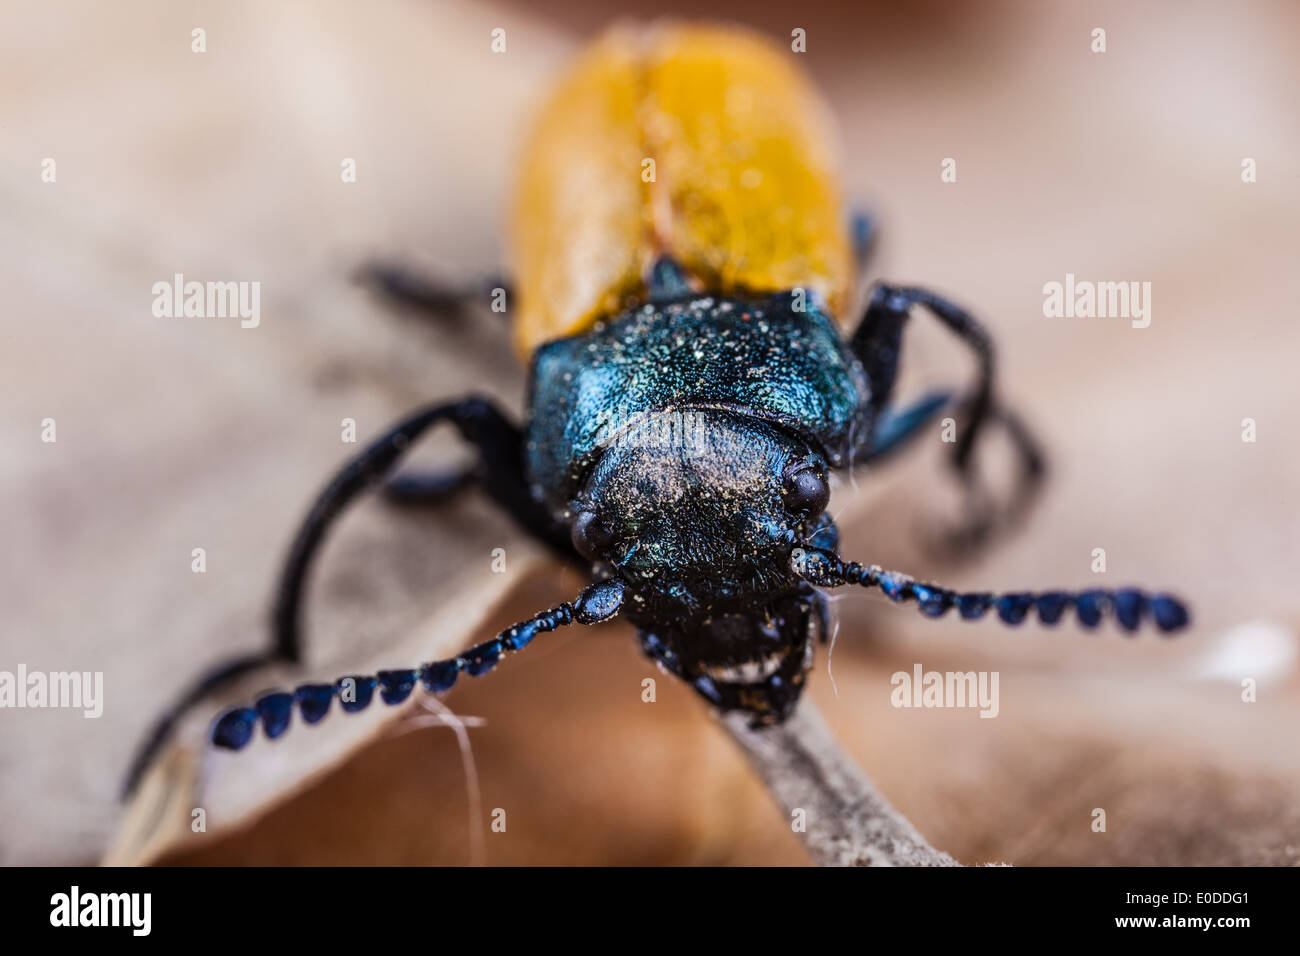 Macro shot of an Omophlus lepturoides, also known as comb-clawed beetle - Stock Image